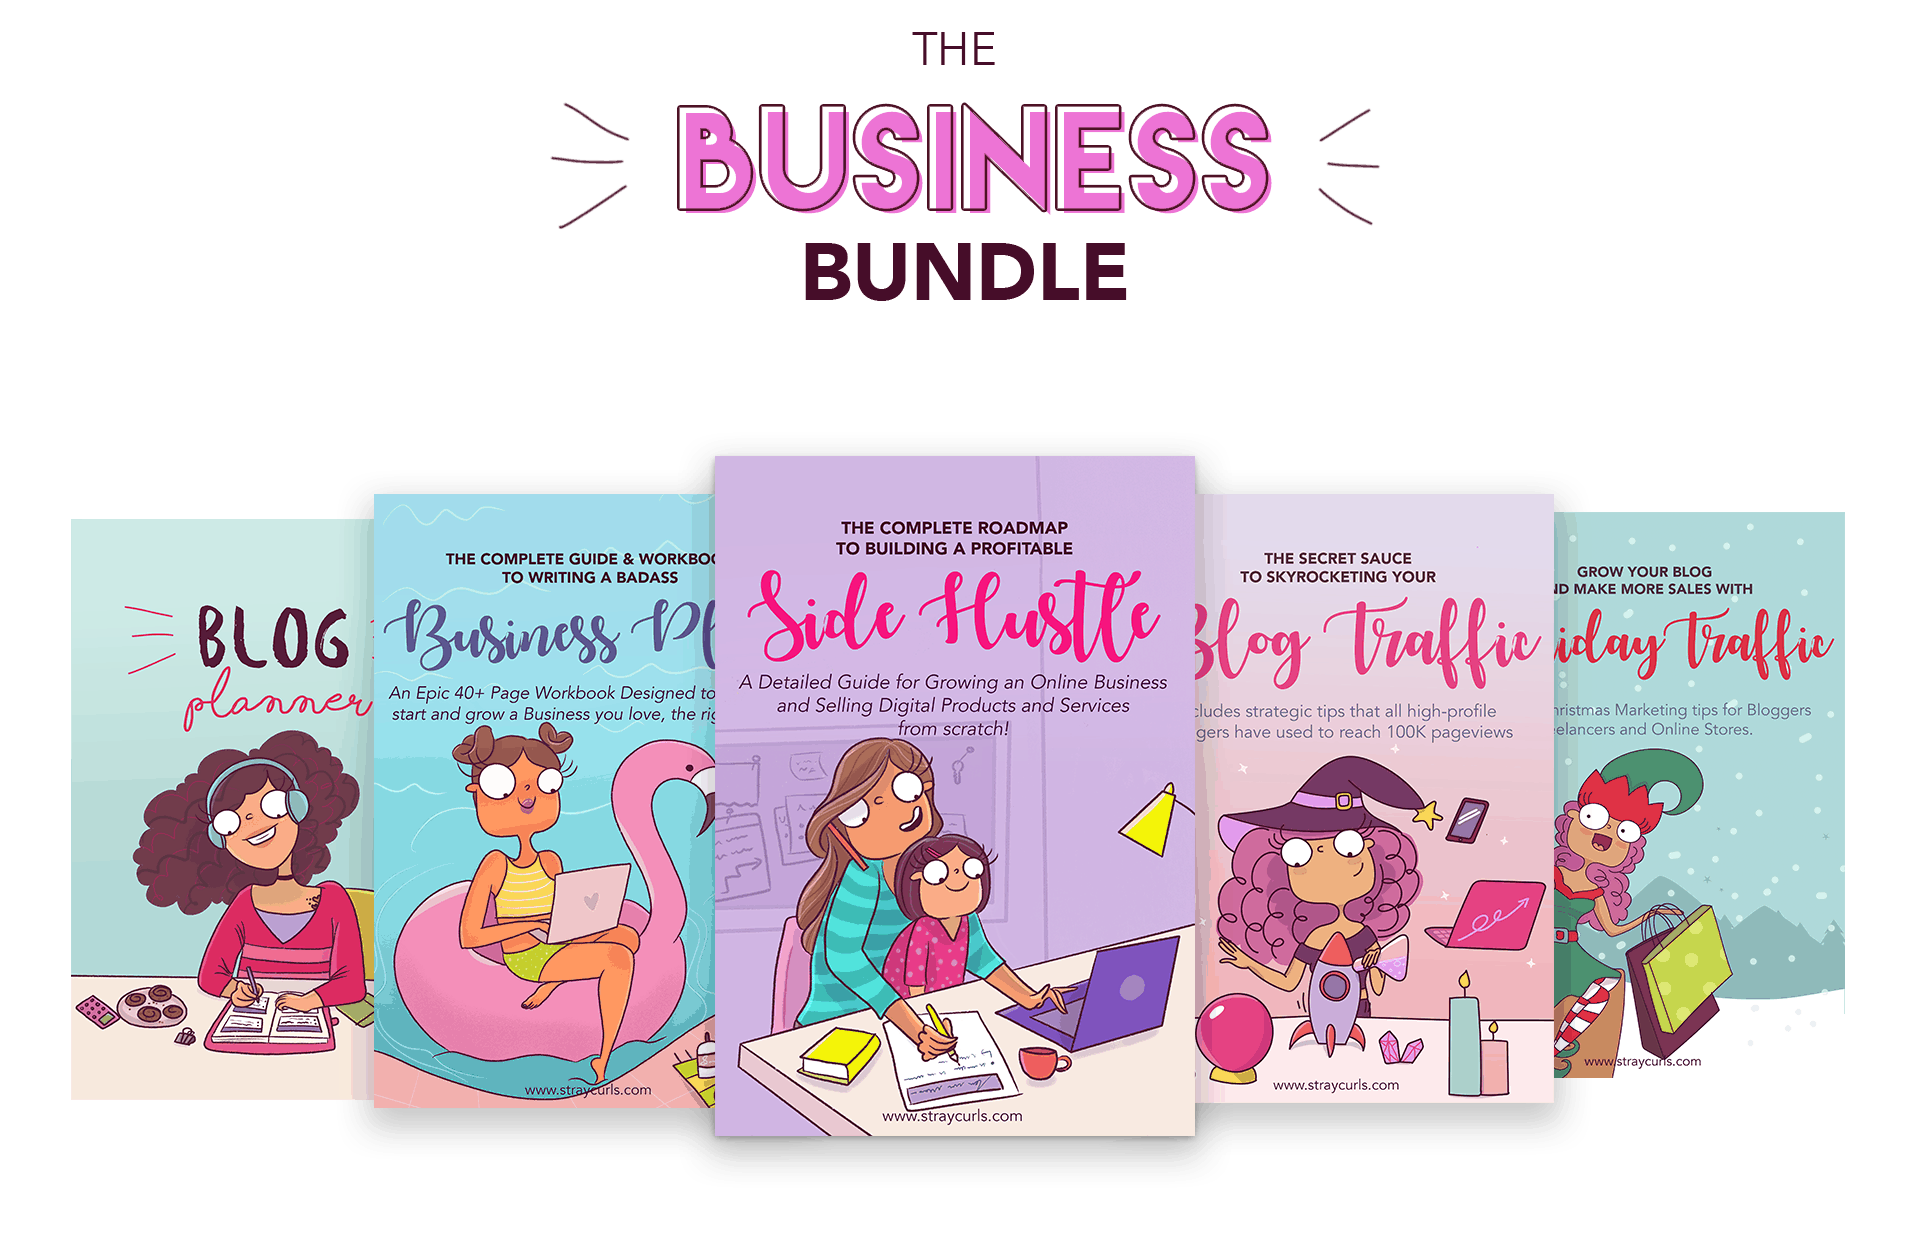 Get the entire Business Bundle which includes the Blog Planner, the Business Planner, the Side Hustle eBook, the Blog Traffic eBook and the Holiday Traffic eBook.